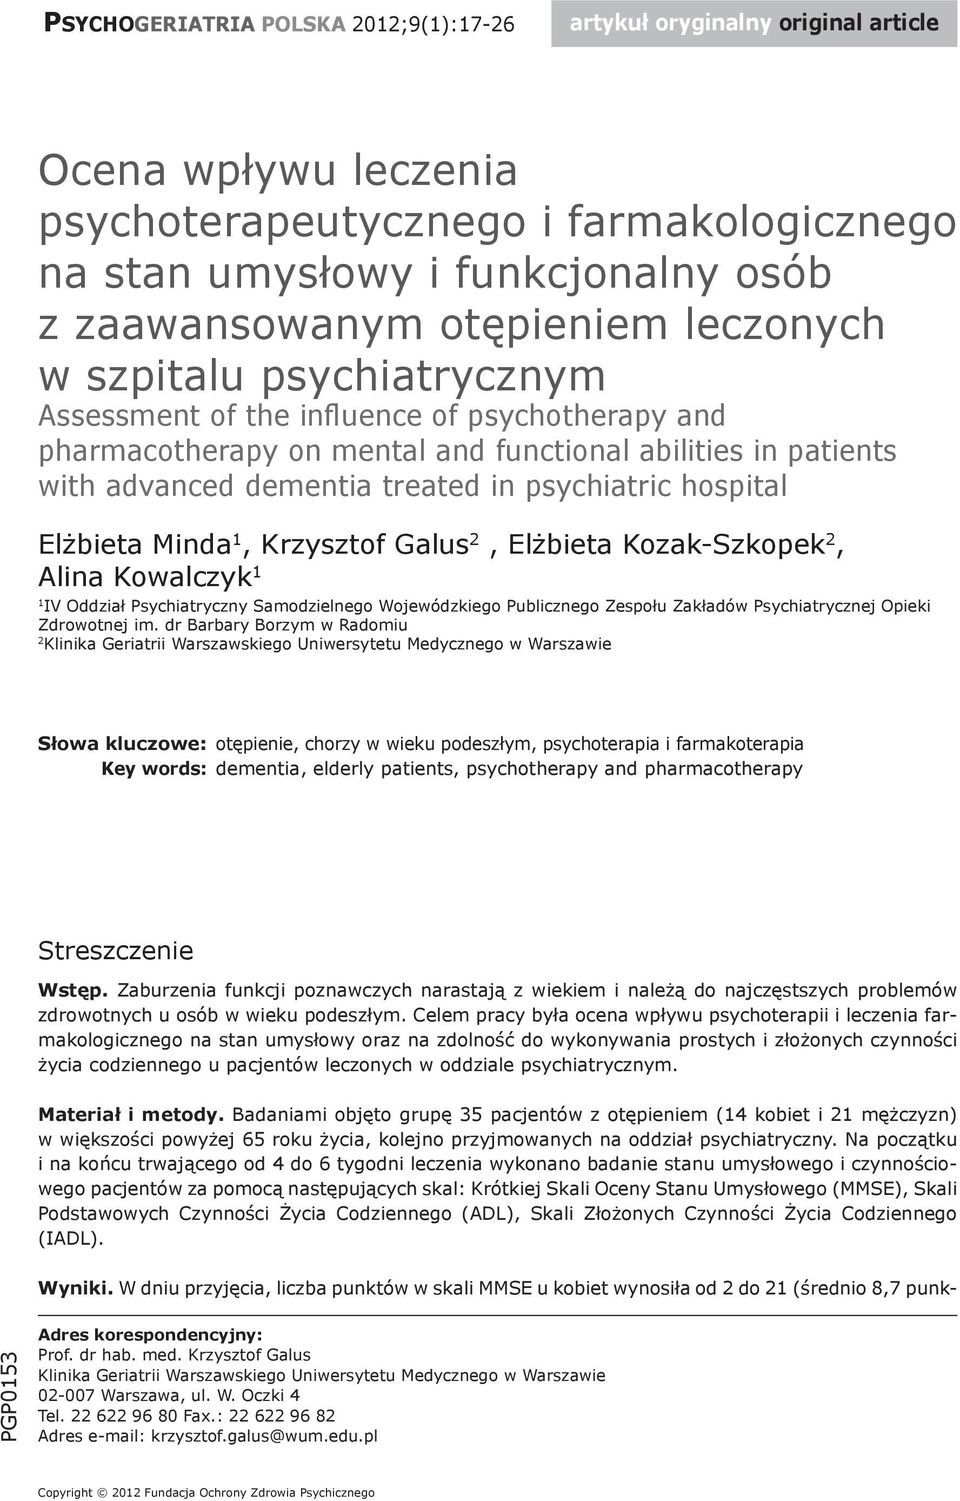 umysłowy i funkcjonalny osób leczonych w szpitalu psychiatrycznym Assessment of the influence of psychotherapy and pharmacotherapy on mental and functional abilities in patients with advanced